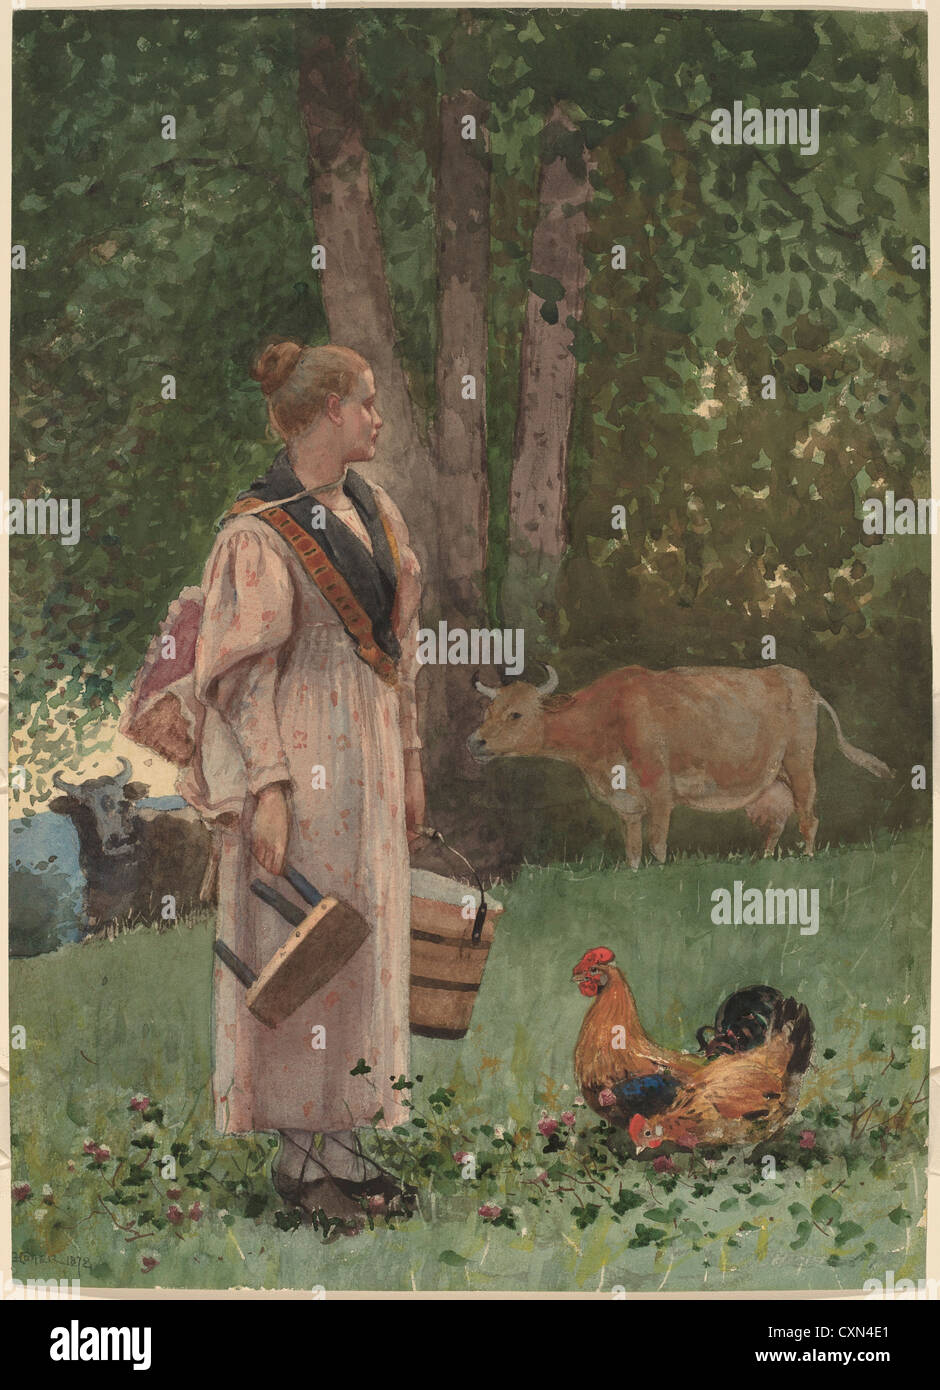 Winslow Homer (American, 1836 - 1910 ), The Milk Maid, 1878, watercolor over graphite - Stock Image